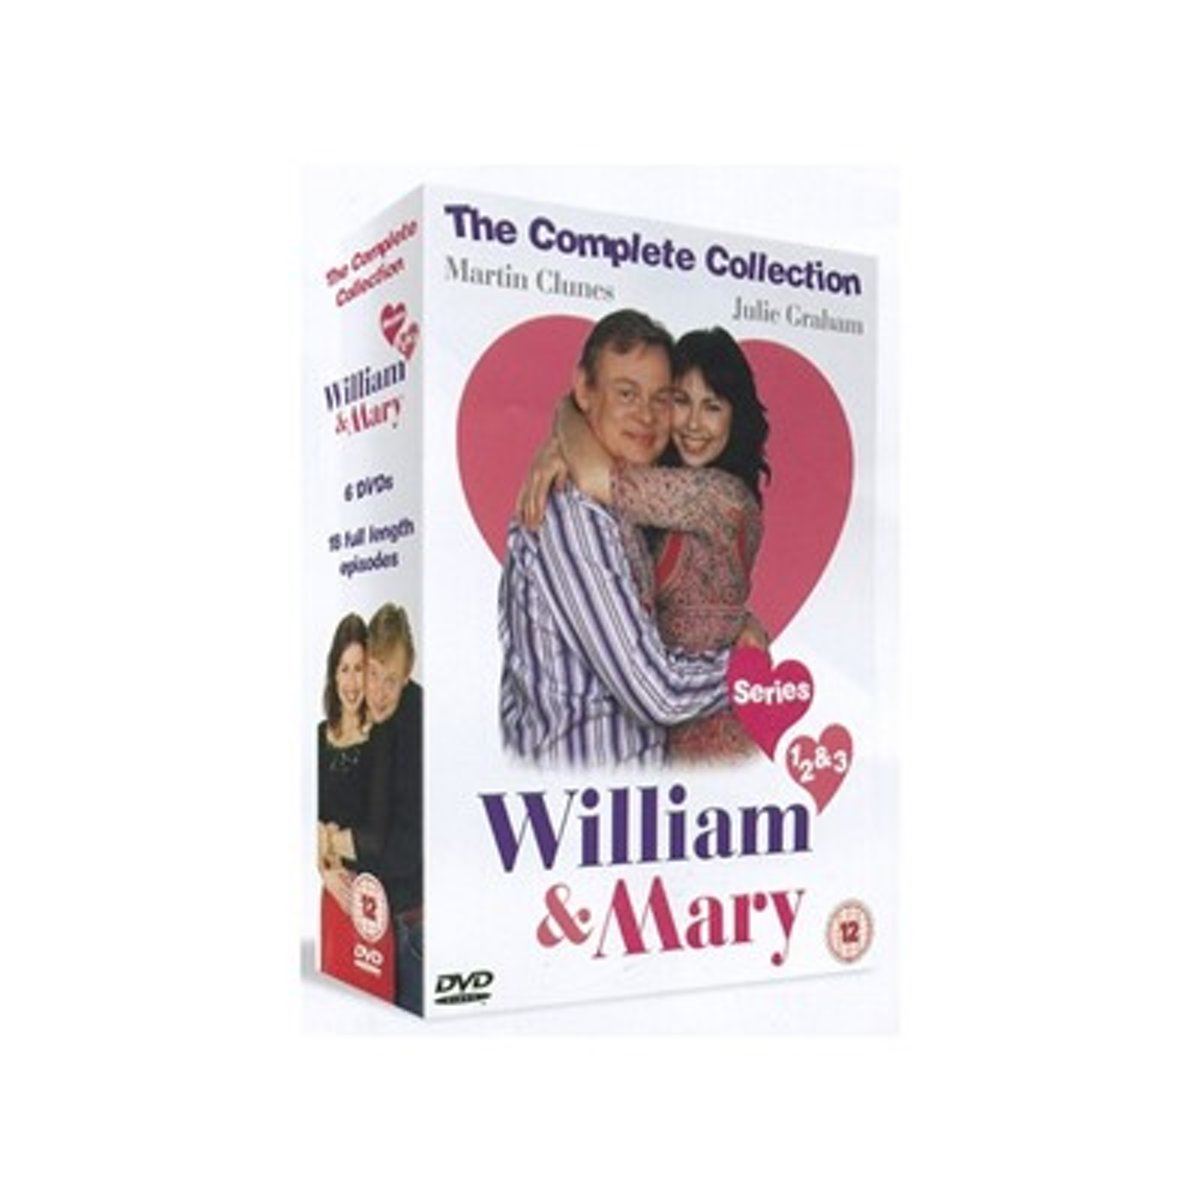 William & Mary - The Complete Collection (6xDVD)(Import)